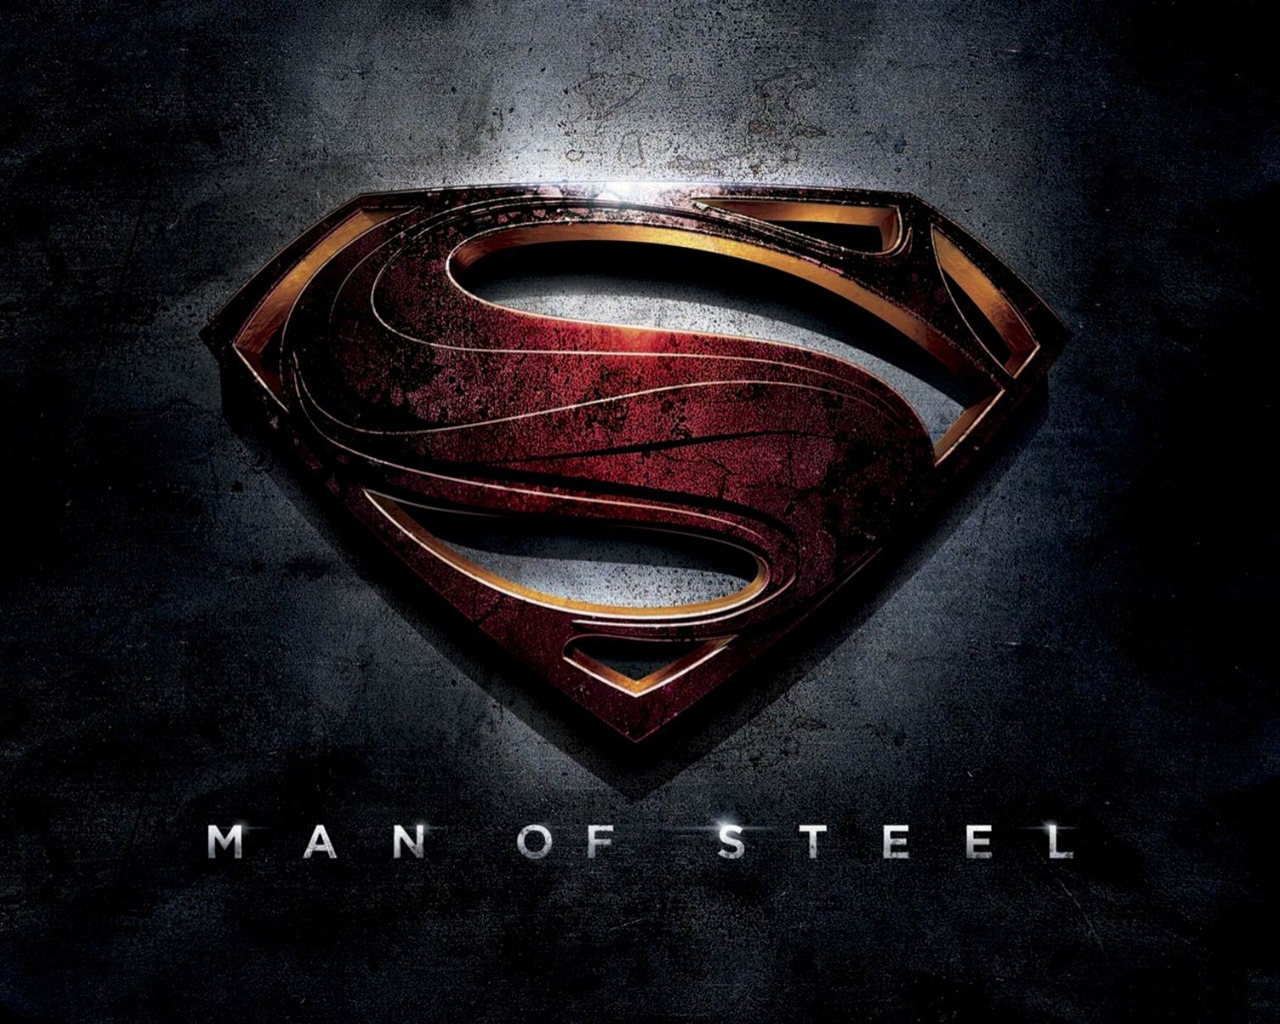 http://1.bp.blogspot.com/-mkbVjqVp8fQ/UbshTR6ssqI/AAAAAAAALq0/7Lc1nQ9Tt_s/s1600/Superman-Man_Of_Steel_2013_Movie_HD_Wallpaper_04_1280x1024.jpg